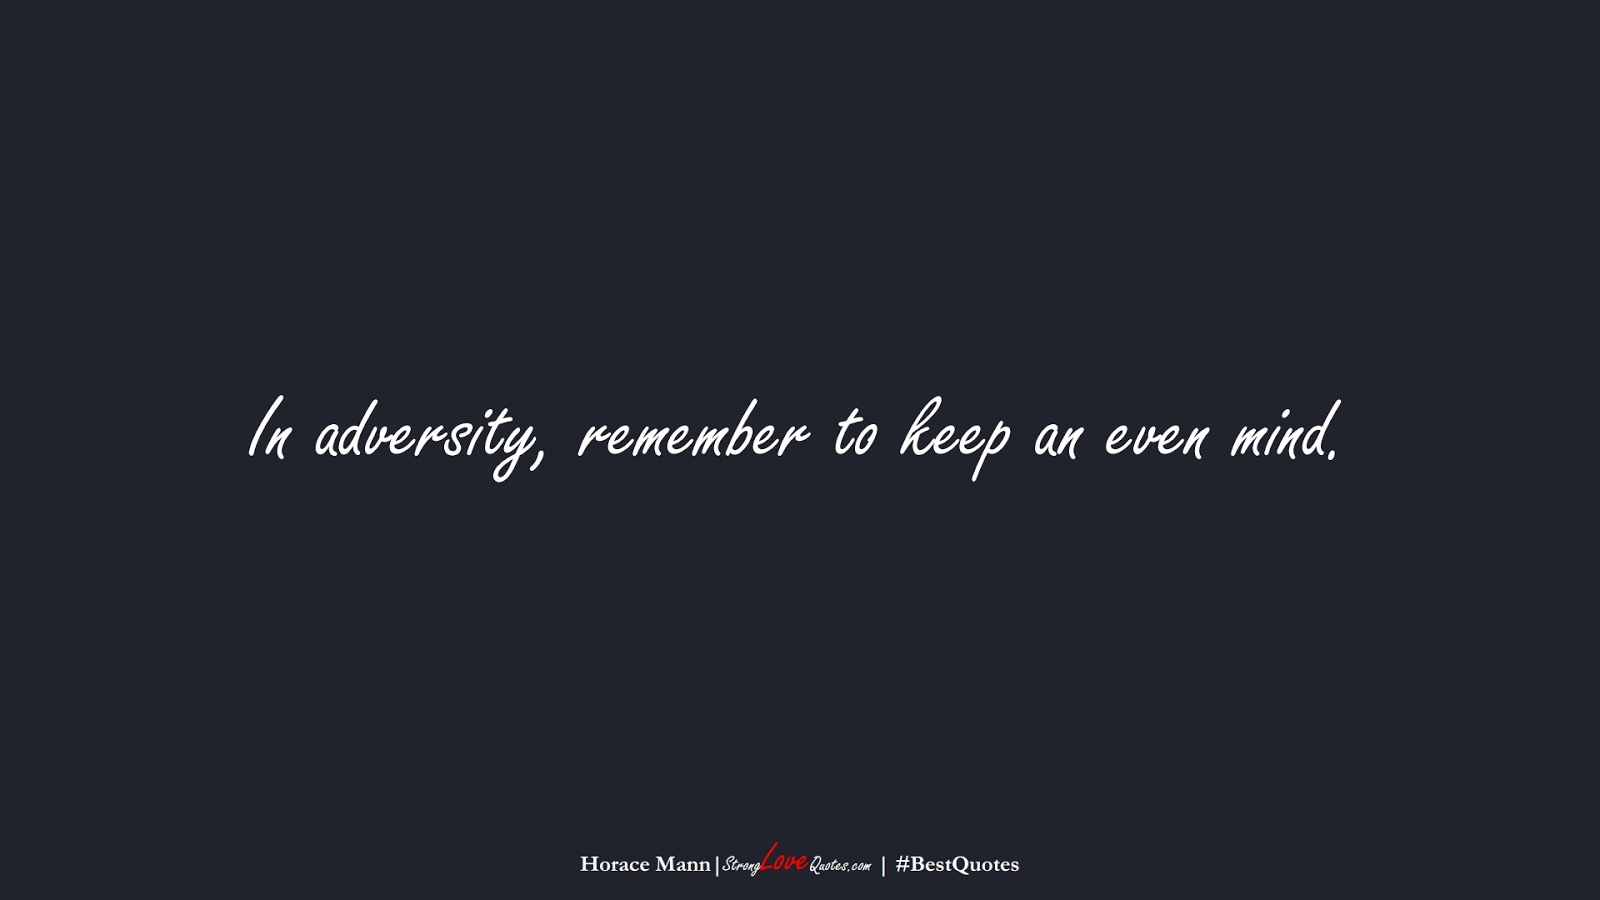 In adversity, remember to keep an even mind. (Horace Mann);  #BestQuotes